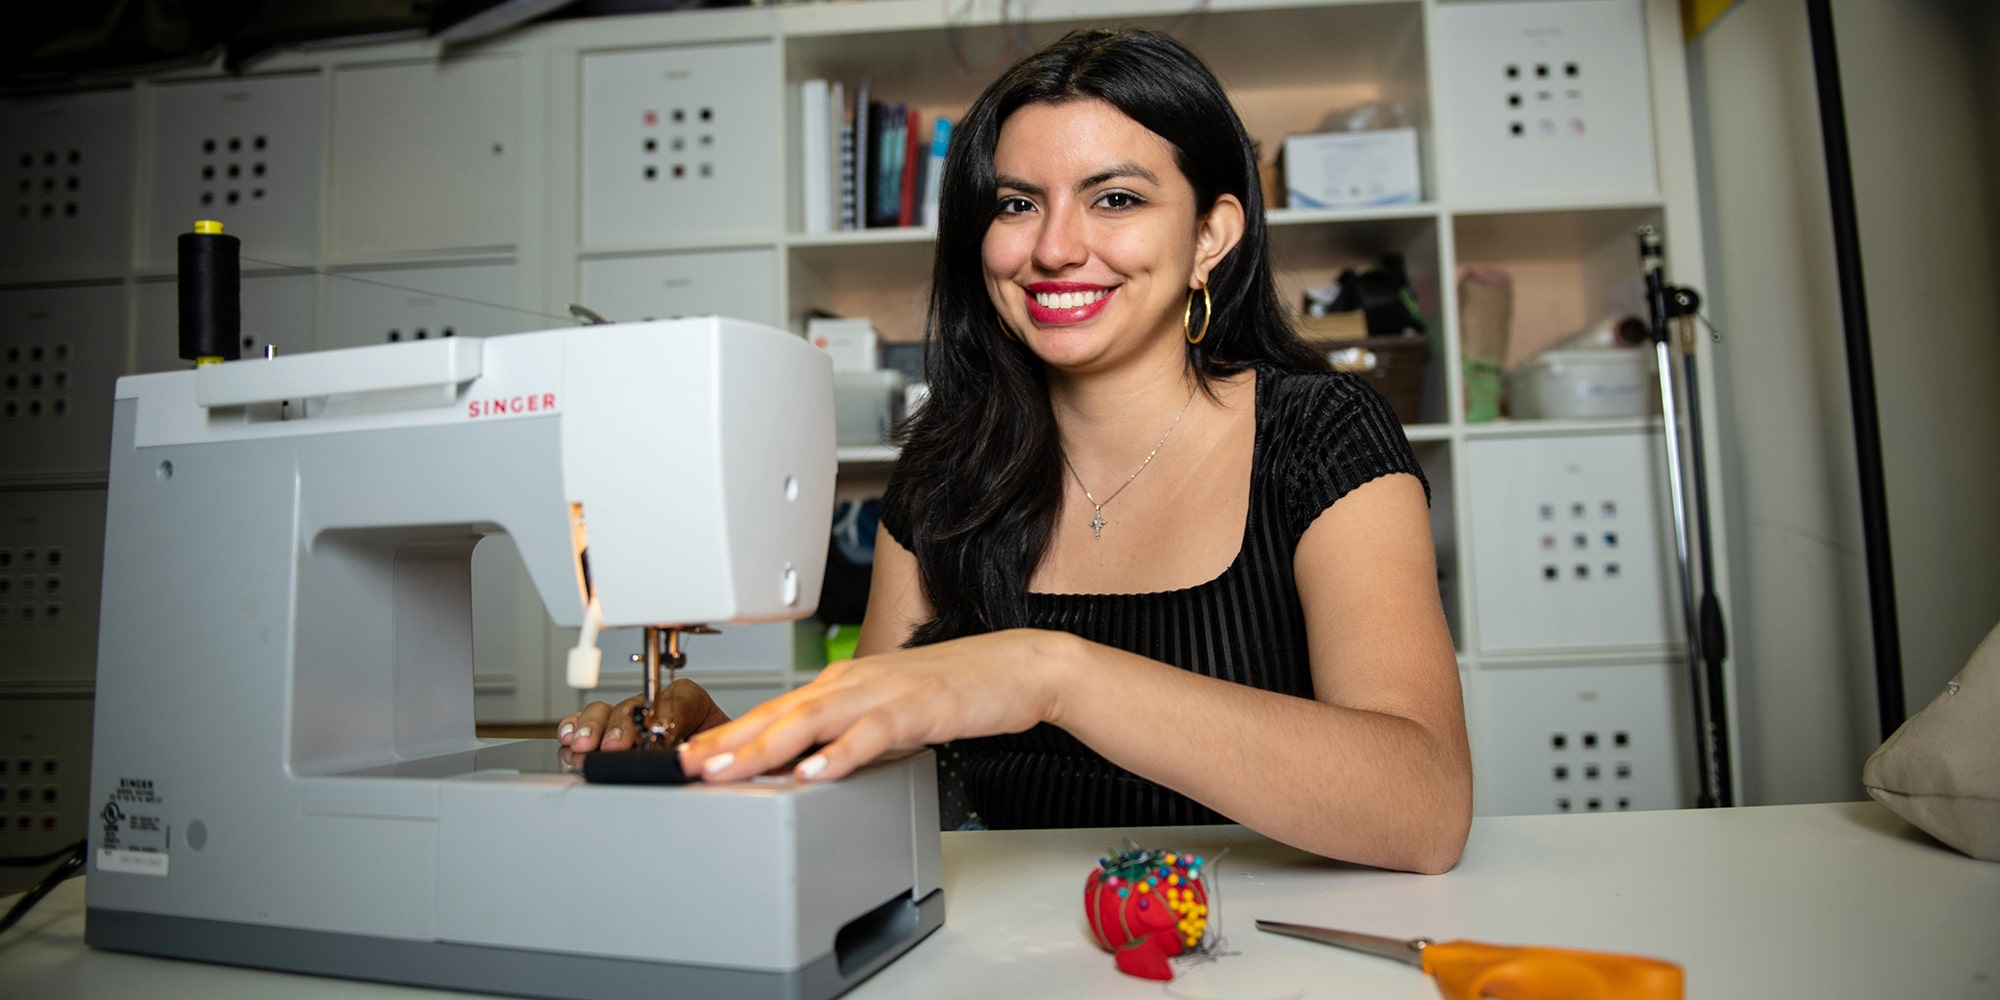 Ashley Burbano uses a sewing machine in the lab